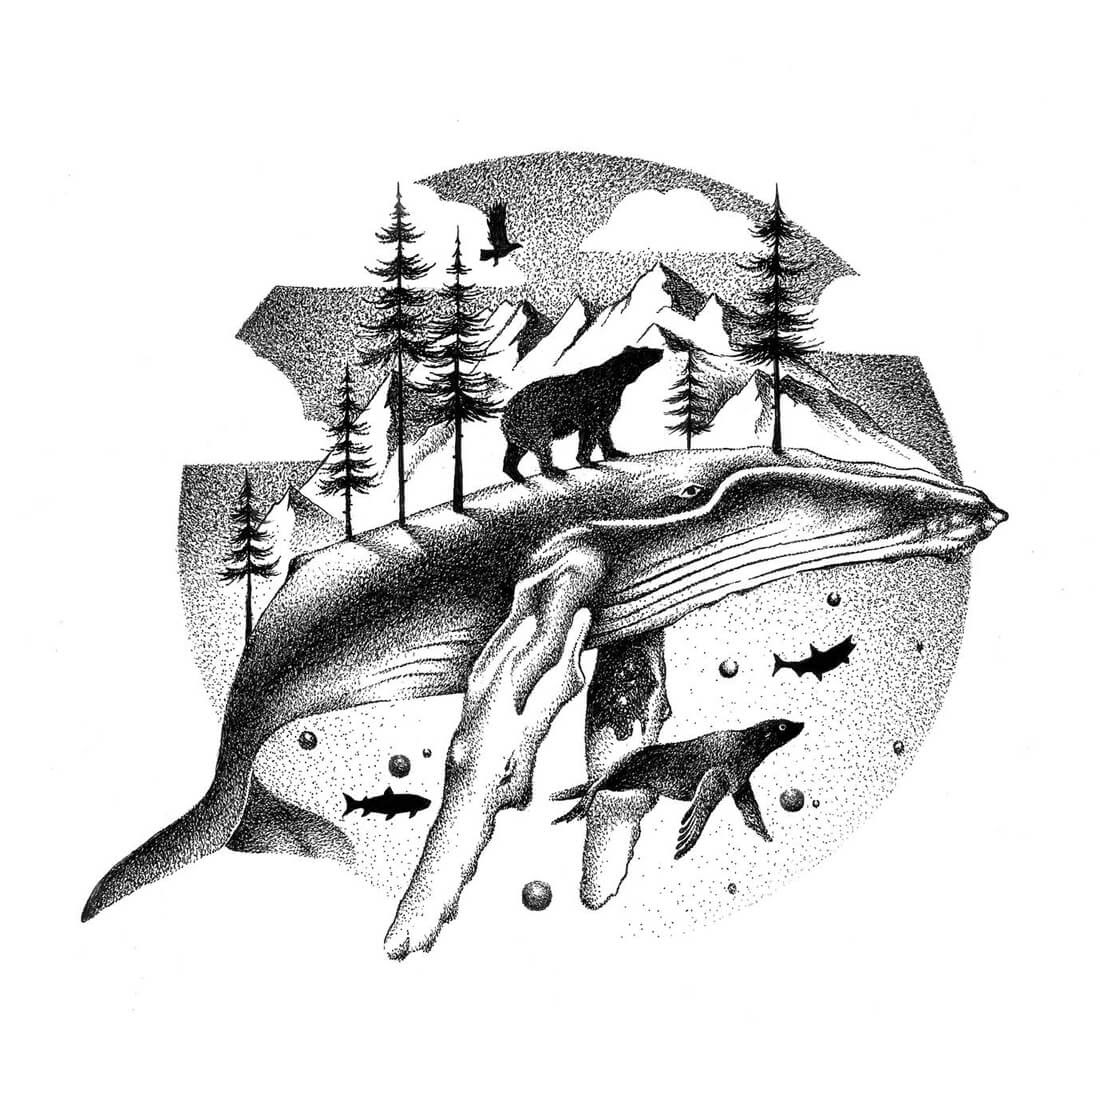 14-Arctic-Wonders-Eagle-Bear-Whale-Seal-and-Fish-Thiago-Bianchini-Ink-Animal-Drawings-Within-a-Drawing-www-designstack-co